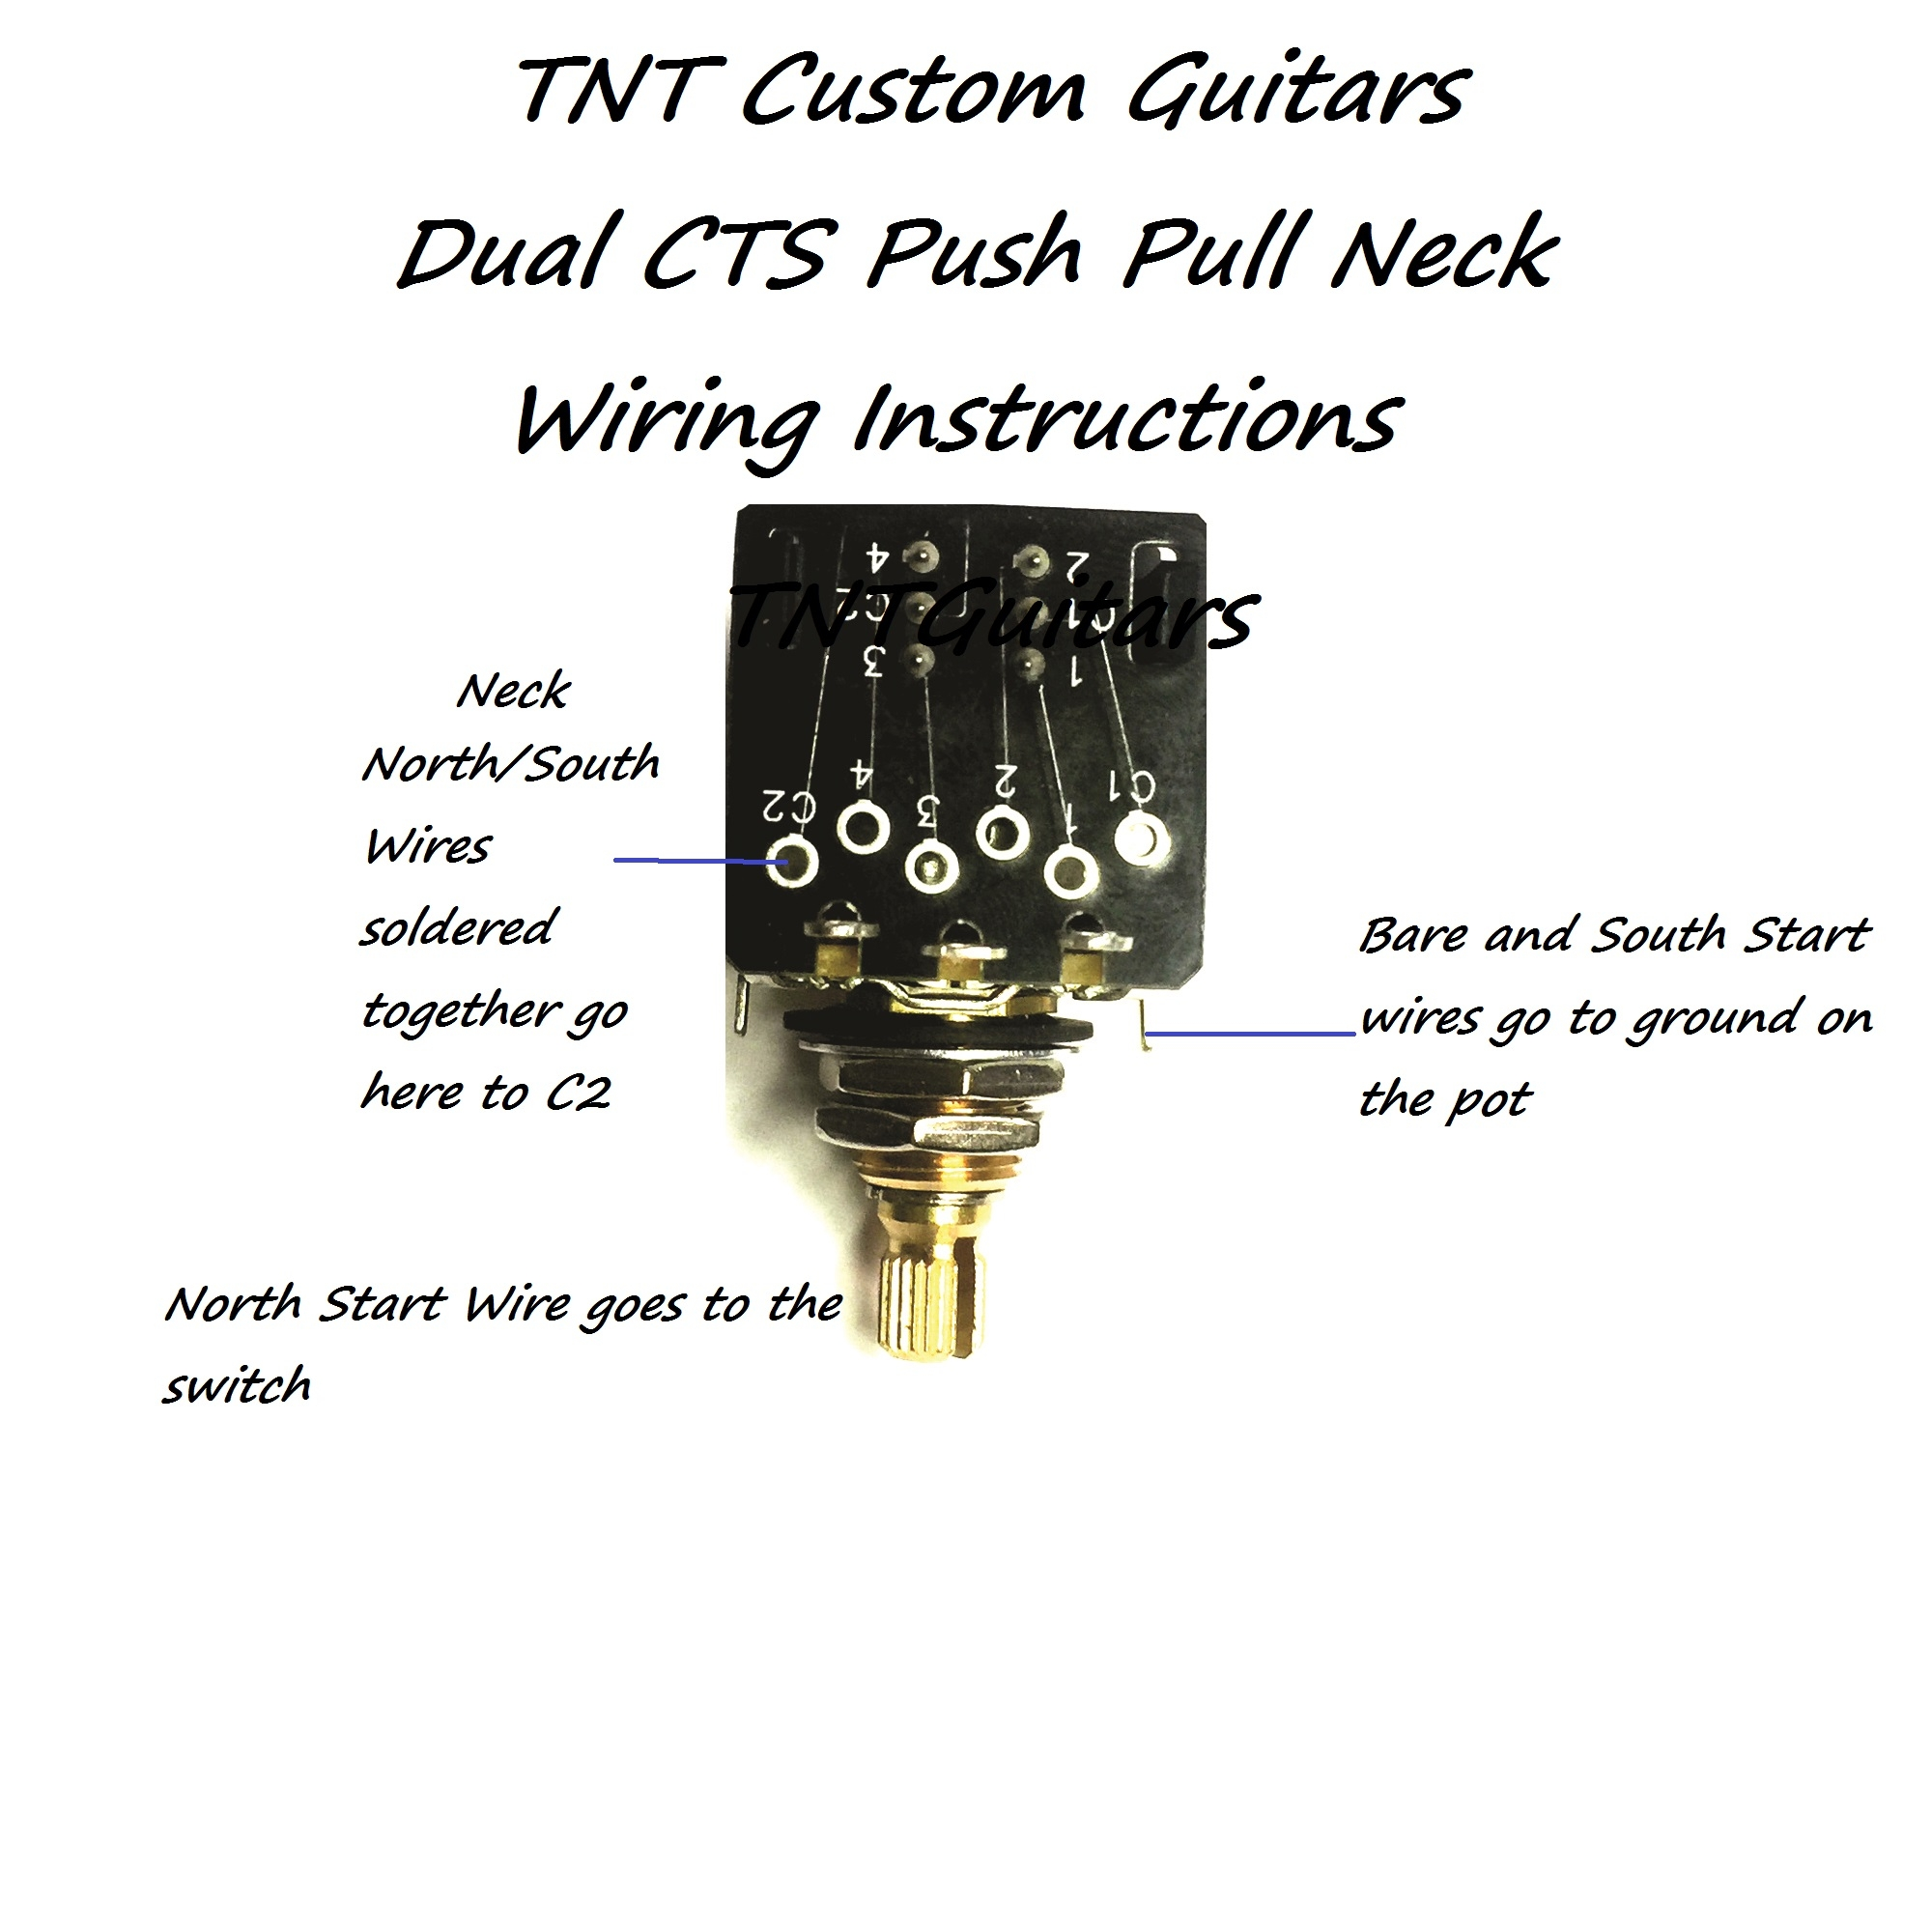 Cool Dimarzio Pickup Wiring Color Code Thin Ibanez Hsh Flat Ibanez Dimarzio Stratocaster Wiring Options Young Solar Panels Wiring Diagram Installation YellowSolar Panel Wire Diagram 1V2T Prewired Harness, 2 Pickup CTS Push Pull DUAL COIL CUT